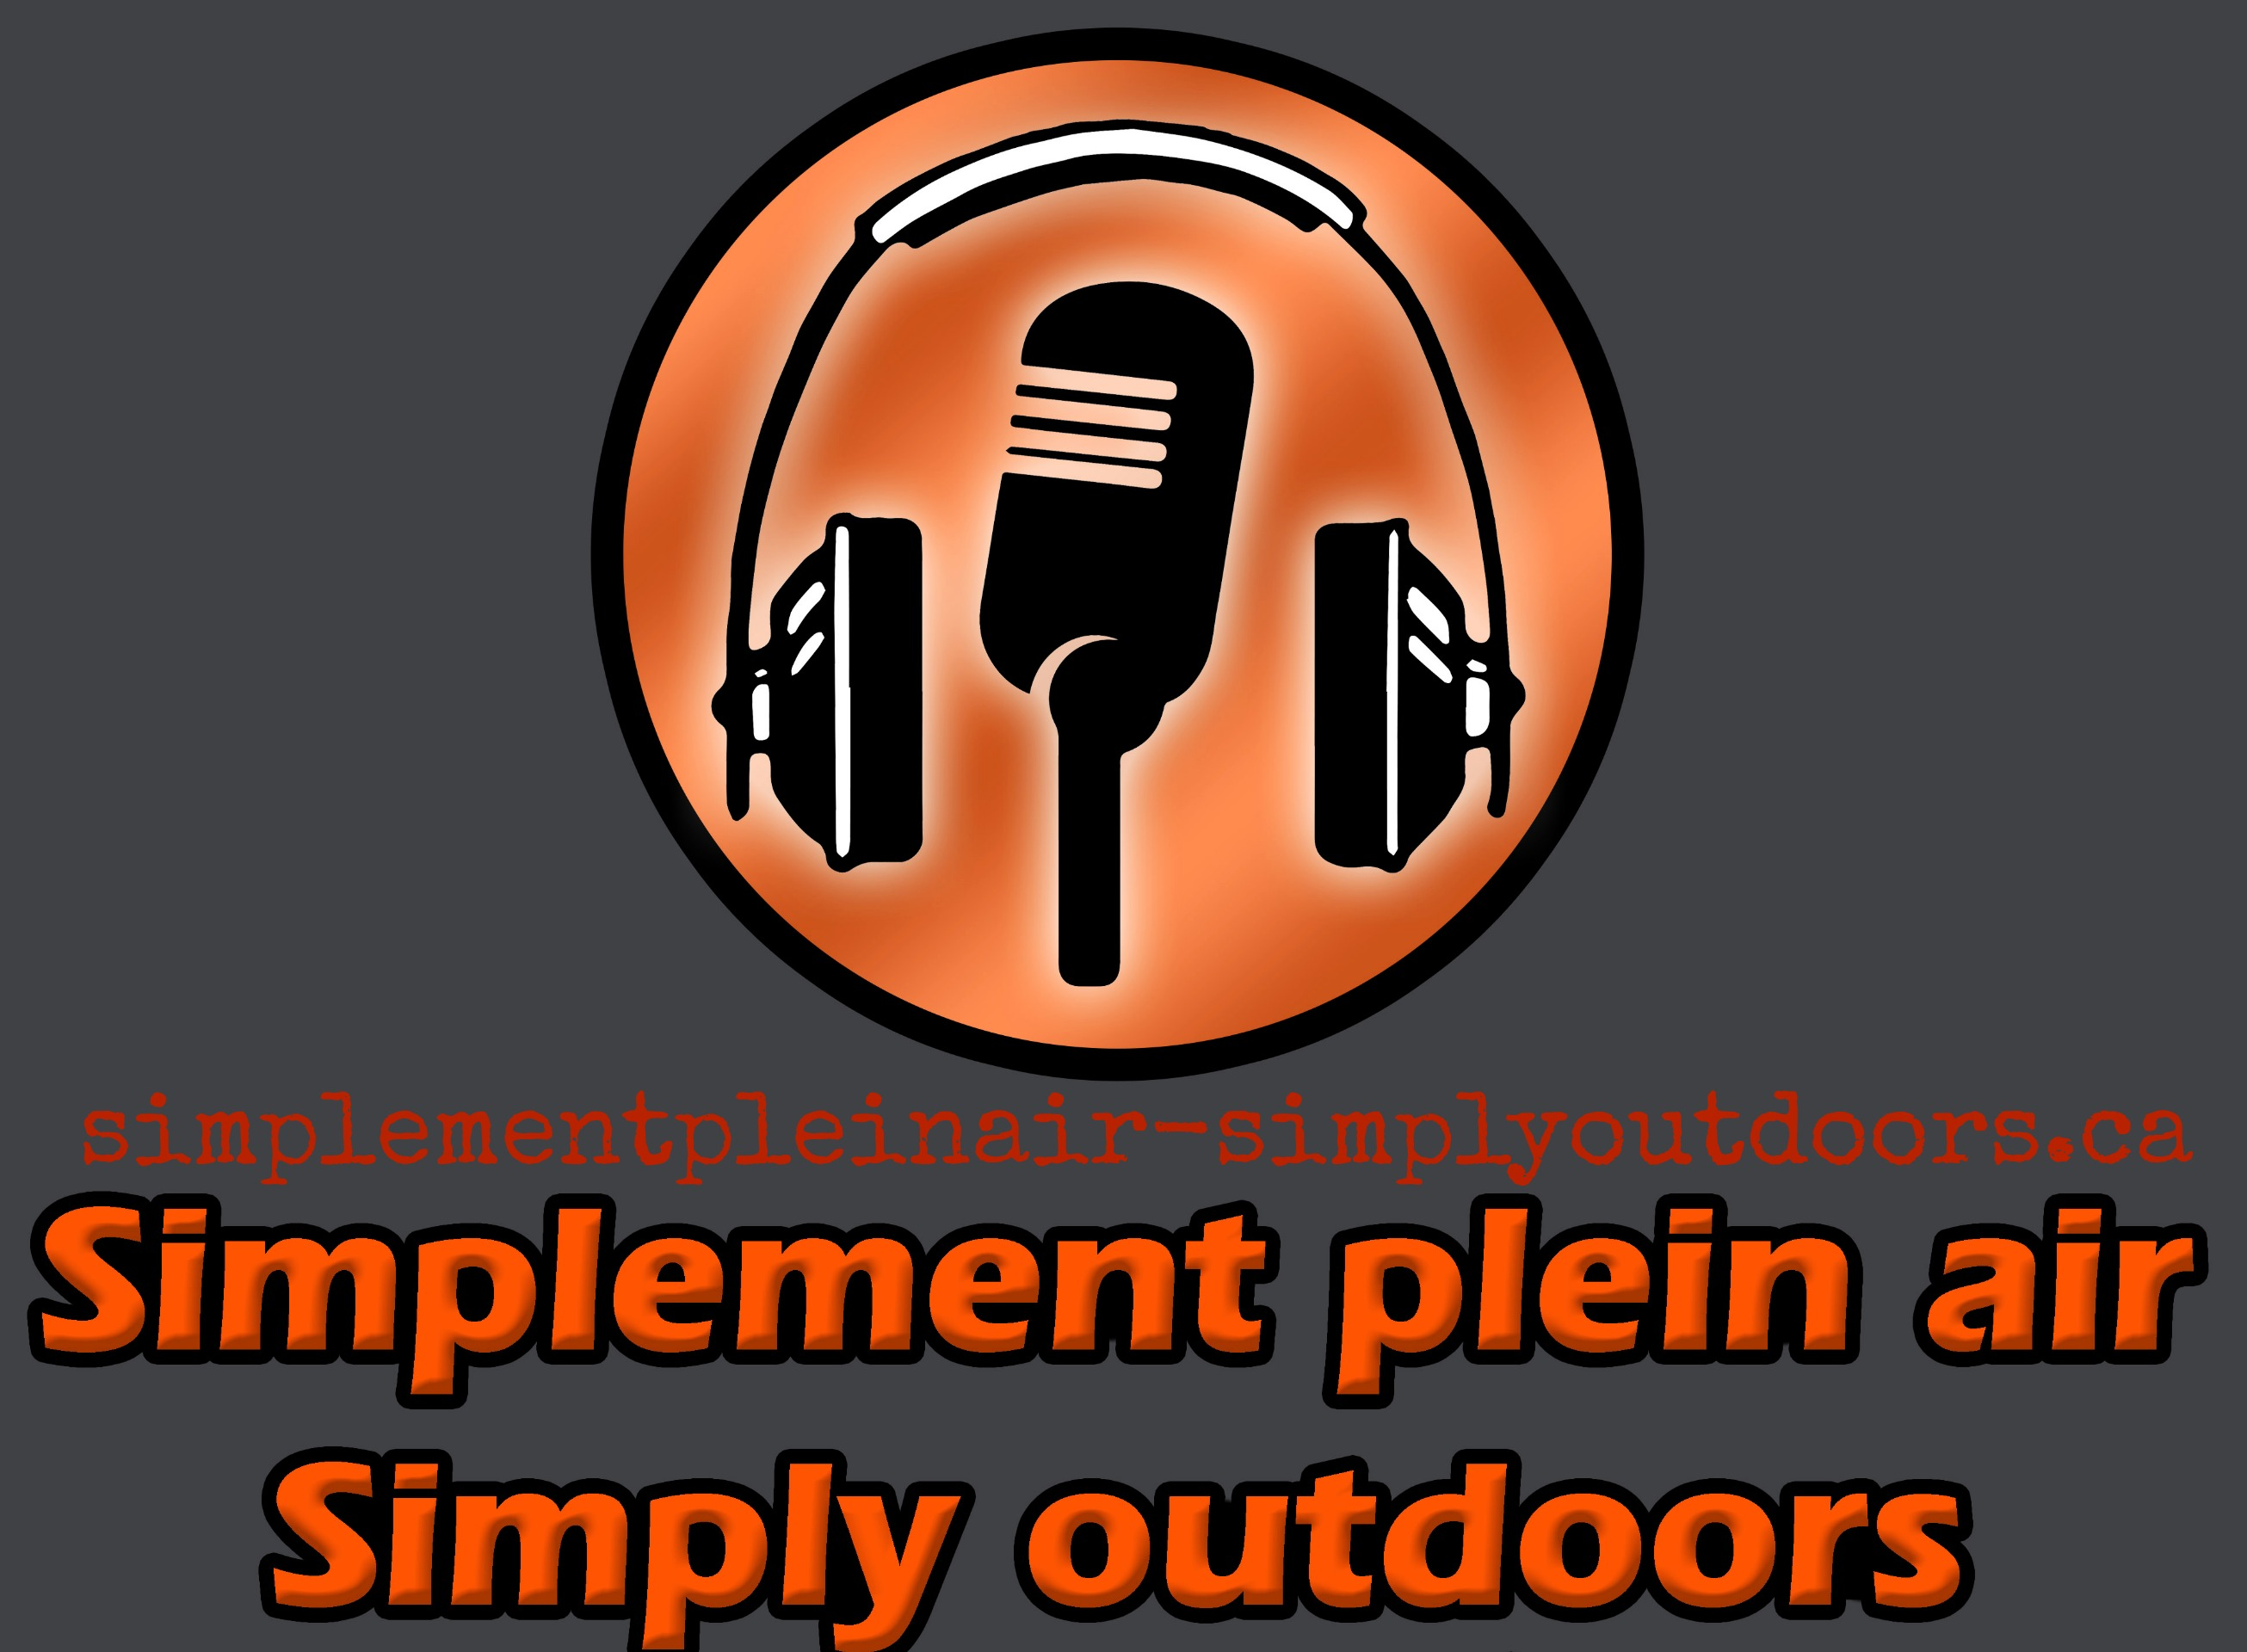 Simplement plein air logo V2